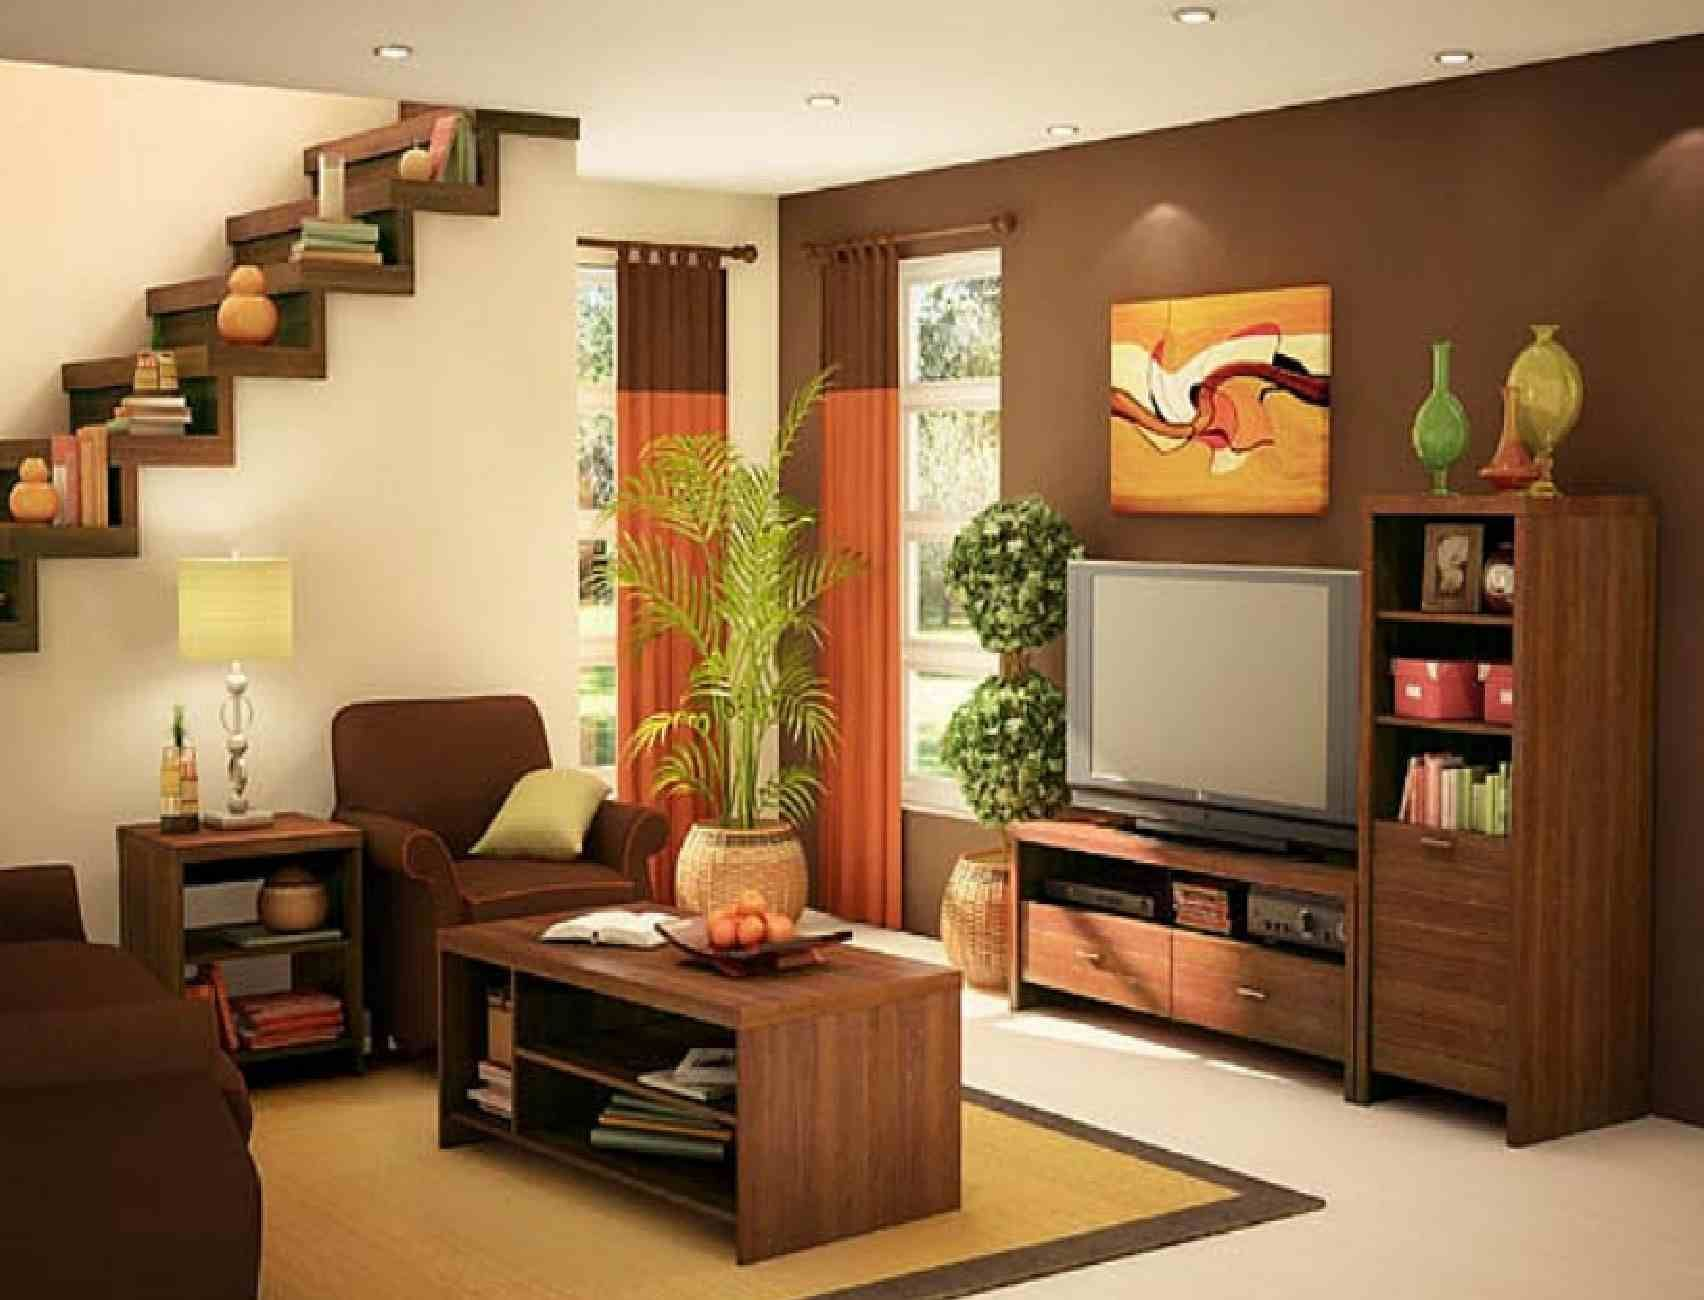 images of living rooms with tan walls | living room images and